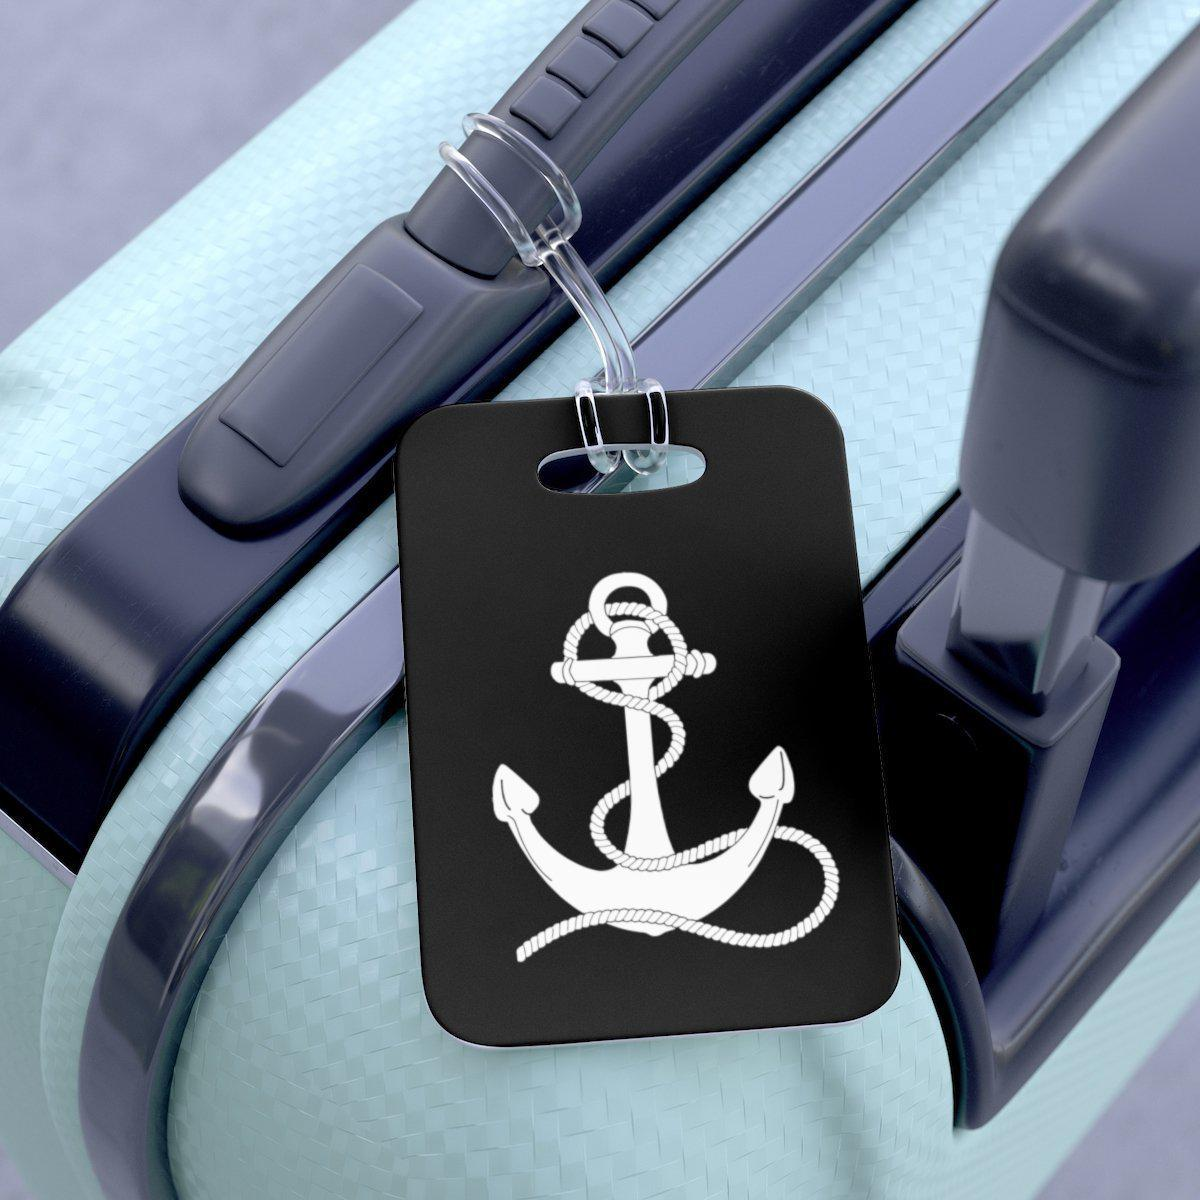 Maison d'Elite Nautica Anchor Symbol Luggage Tag-Luggage & Bags › Travel Accessories › Luggage Tags-Maison d'Elite-One Size-Très Elite